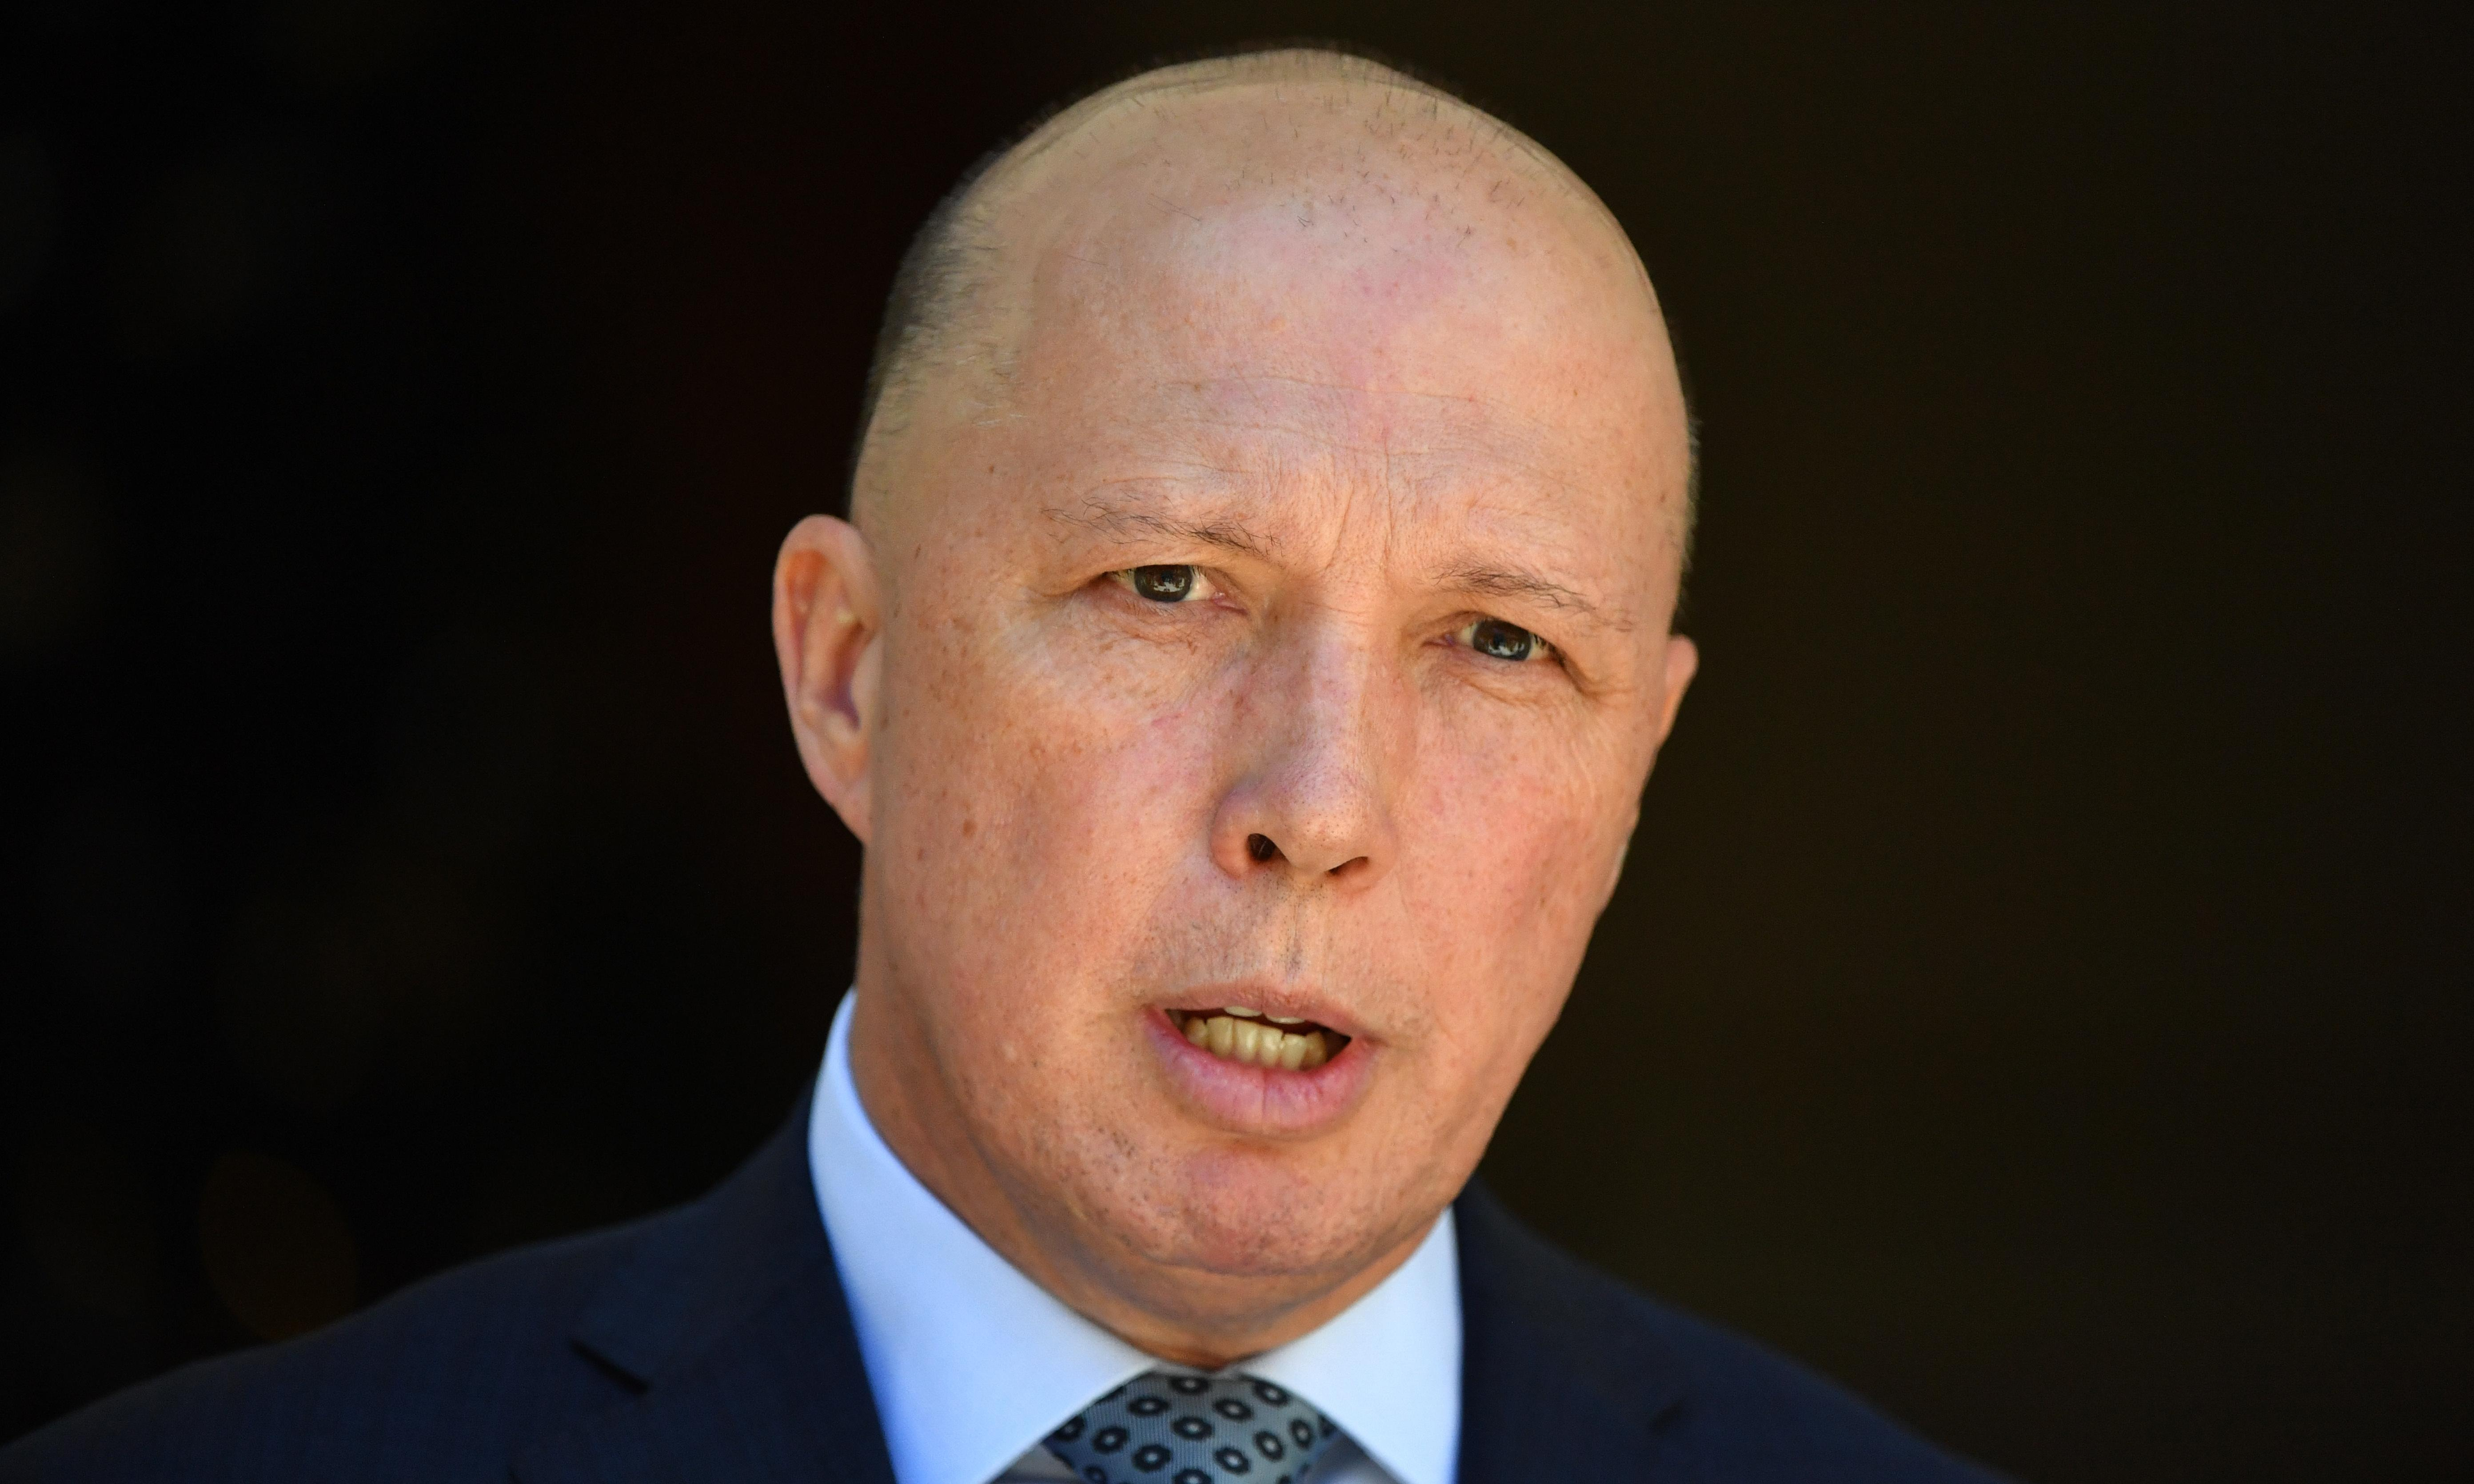 Labor calls on Dutton to explain if classified leak over medevac came from his staff